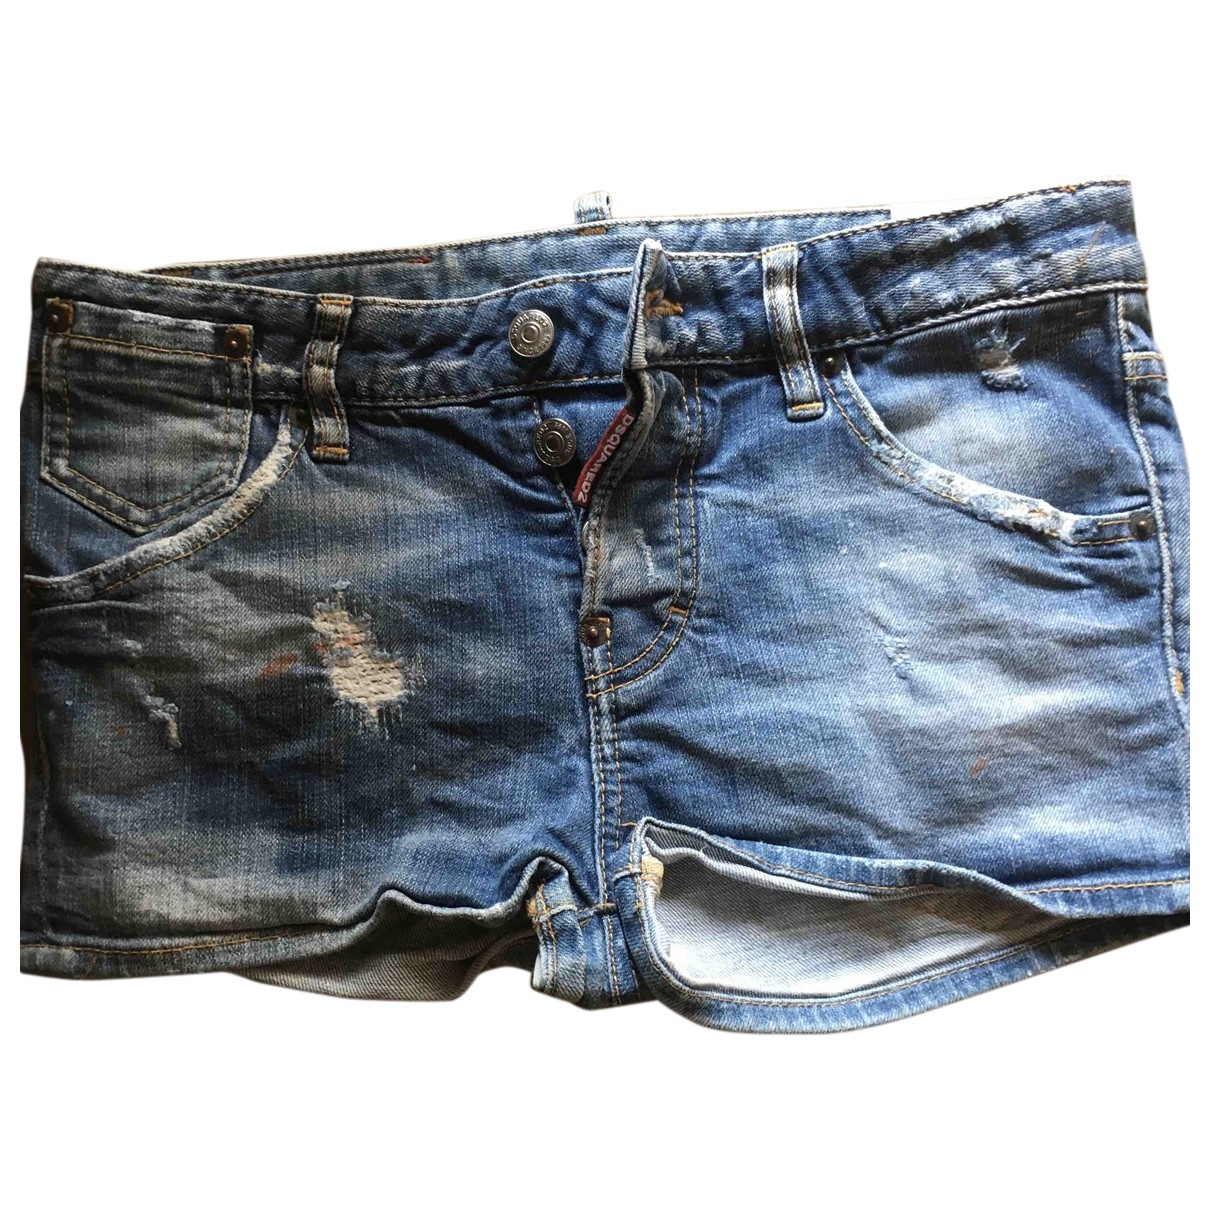 Dsquared2 \N Blue Denim - Jeans Shorts for Women 36 FR